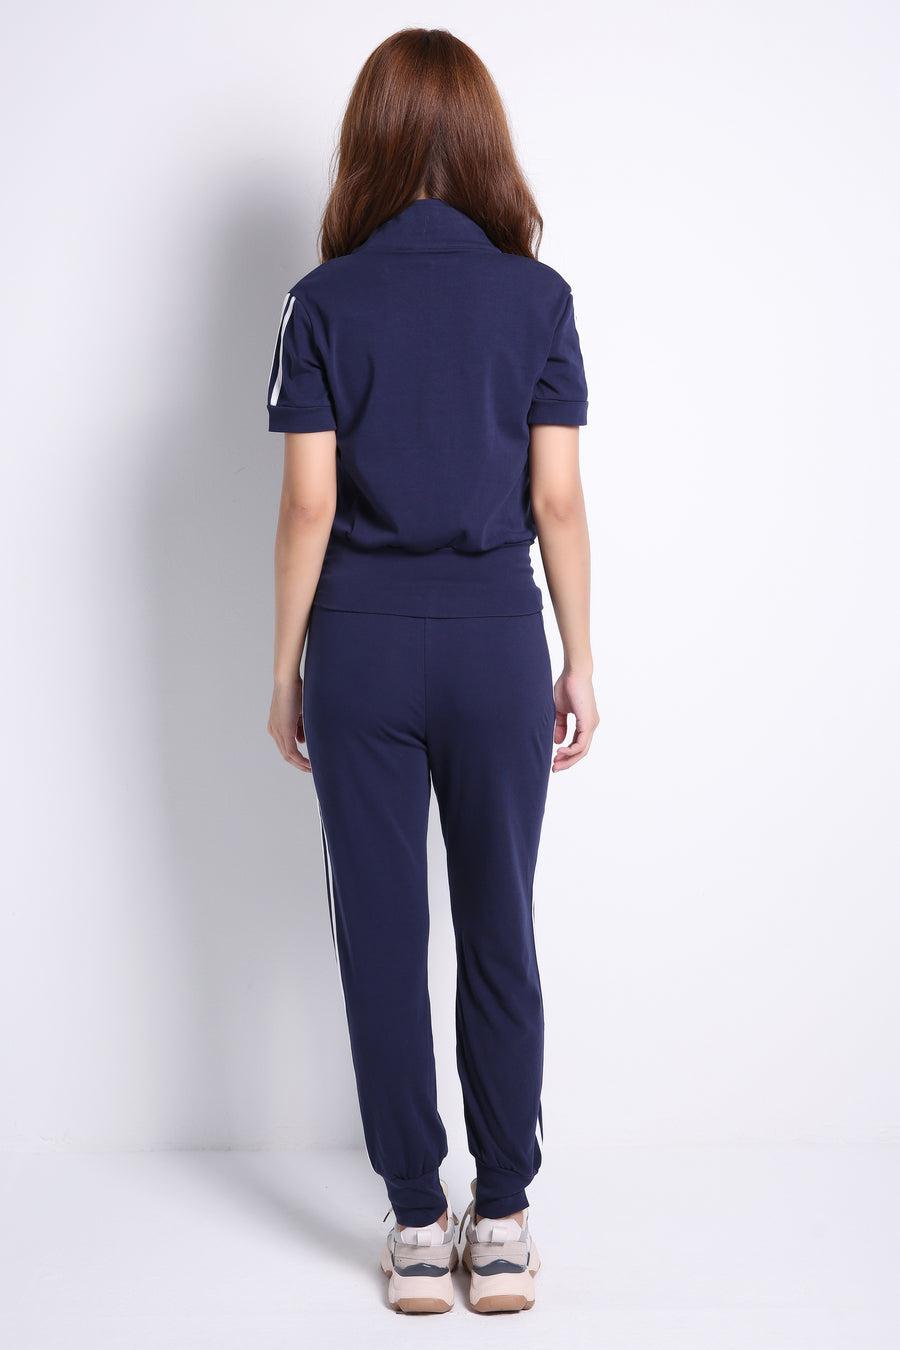 Sport Top With Long Pants Set 9098